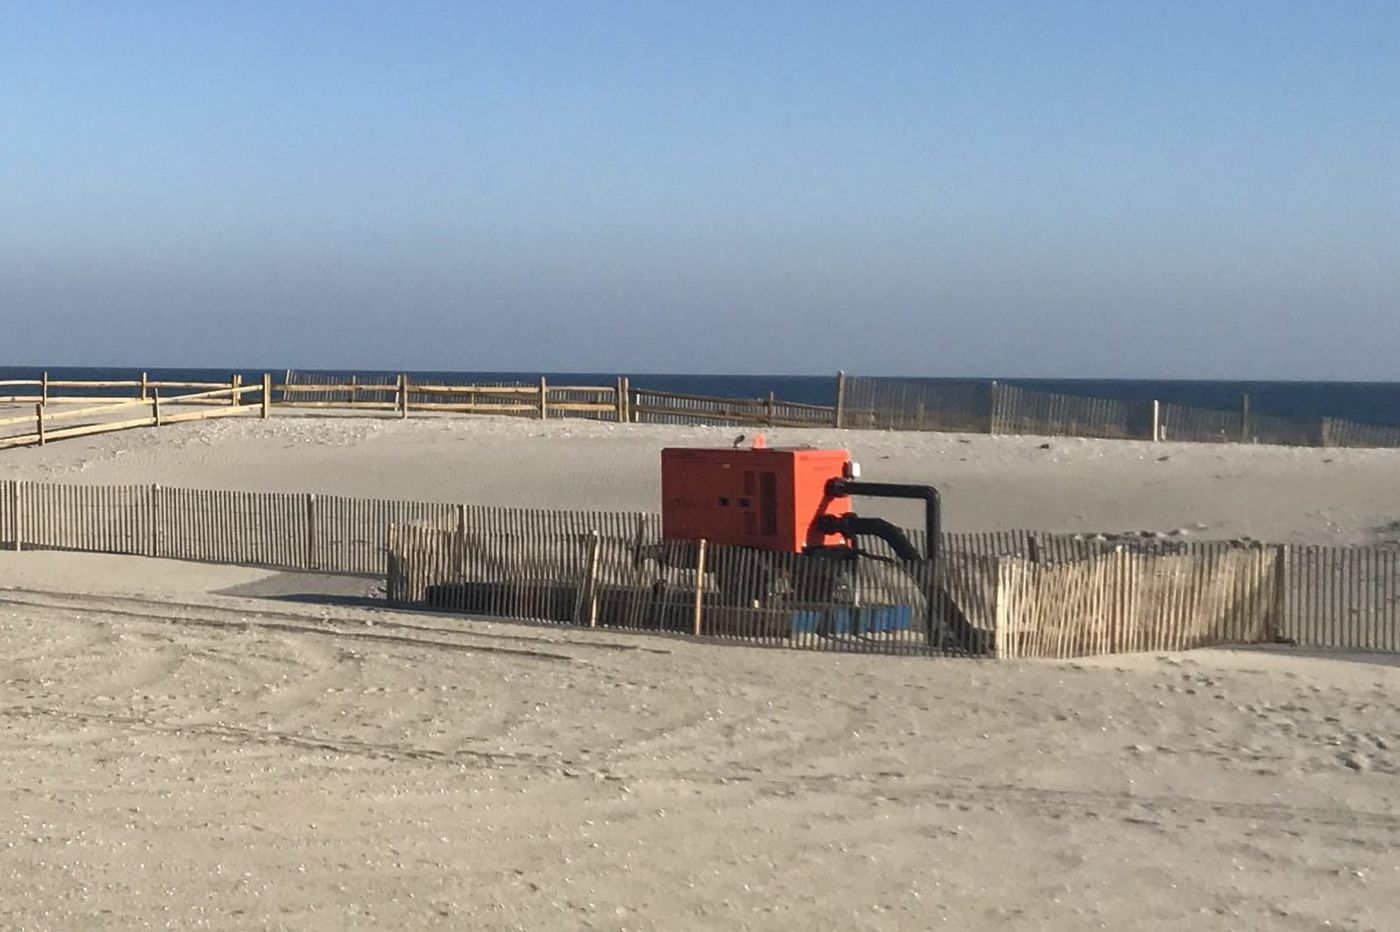 Margate beach work could disrupt next summer too, says Army Corps